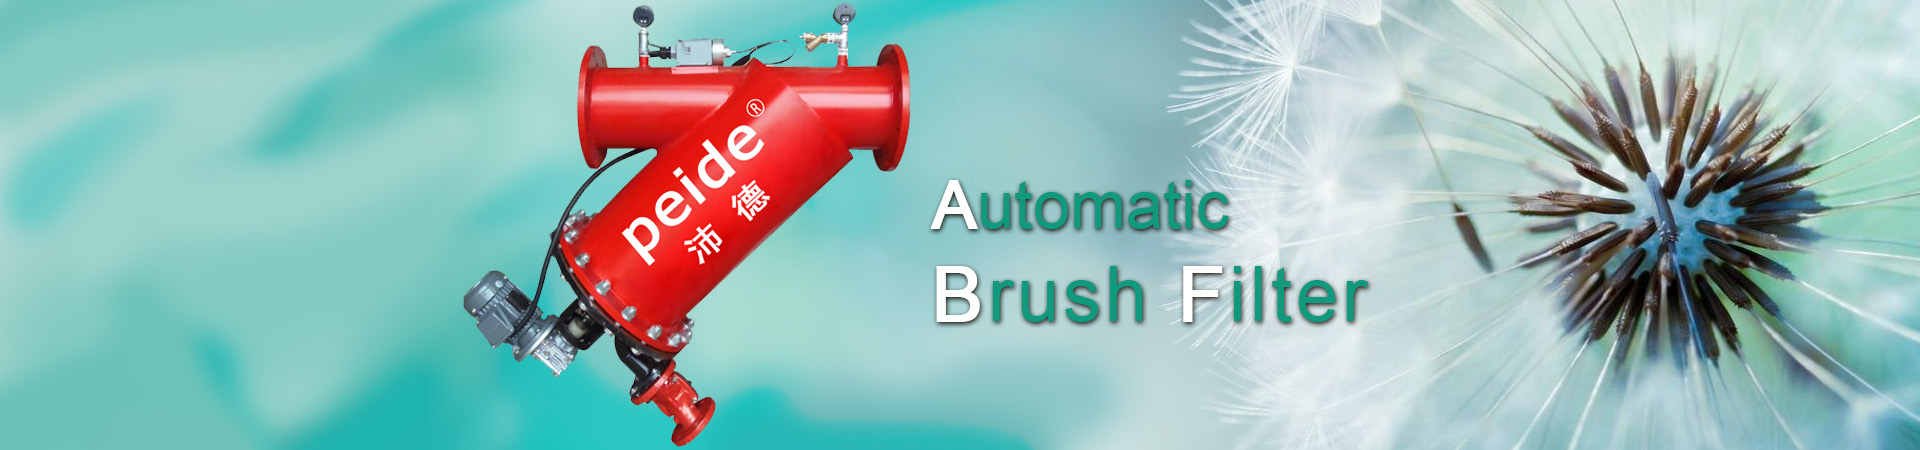 automatic brush filter